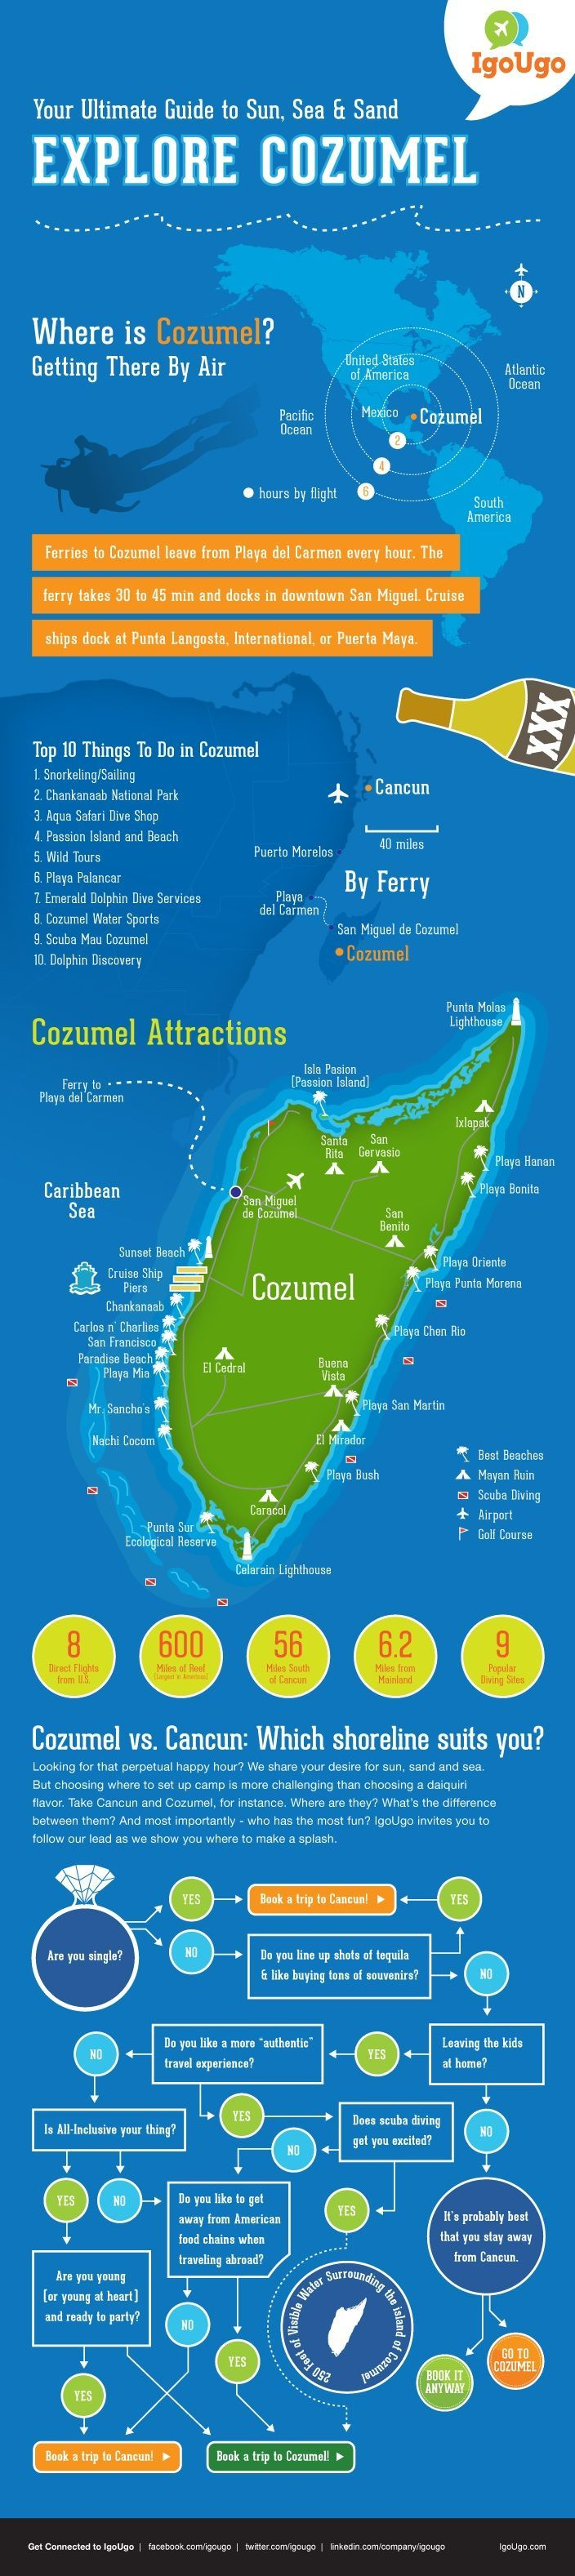 love cozumel we rented a jeep and drove around the entire island stopping at gorgeous cozumel mapcozumel mexico